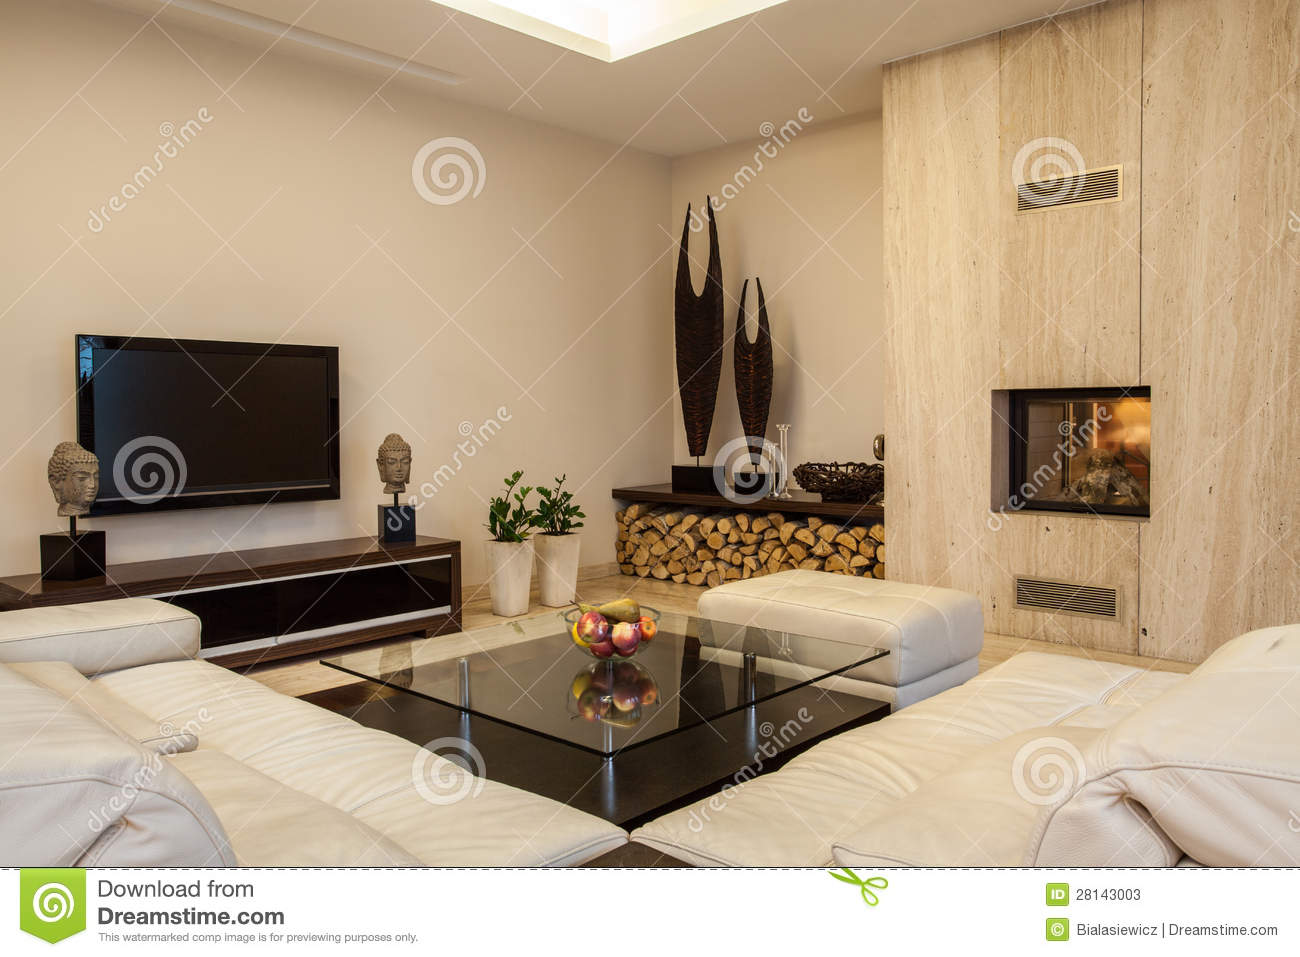 travertine house: beige living room stock photo - image: 28143820